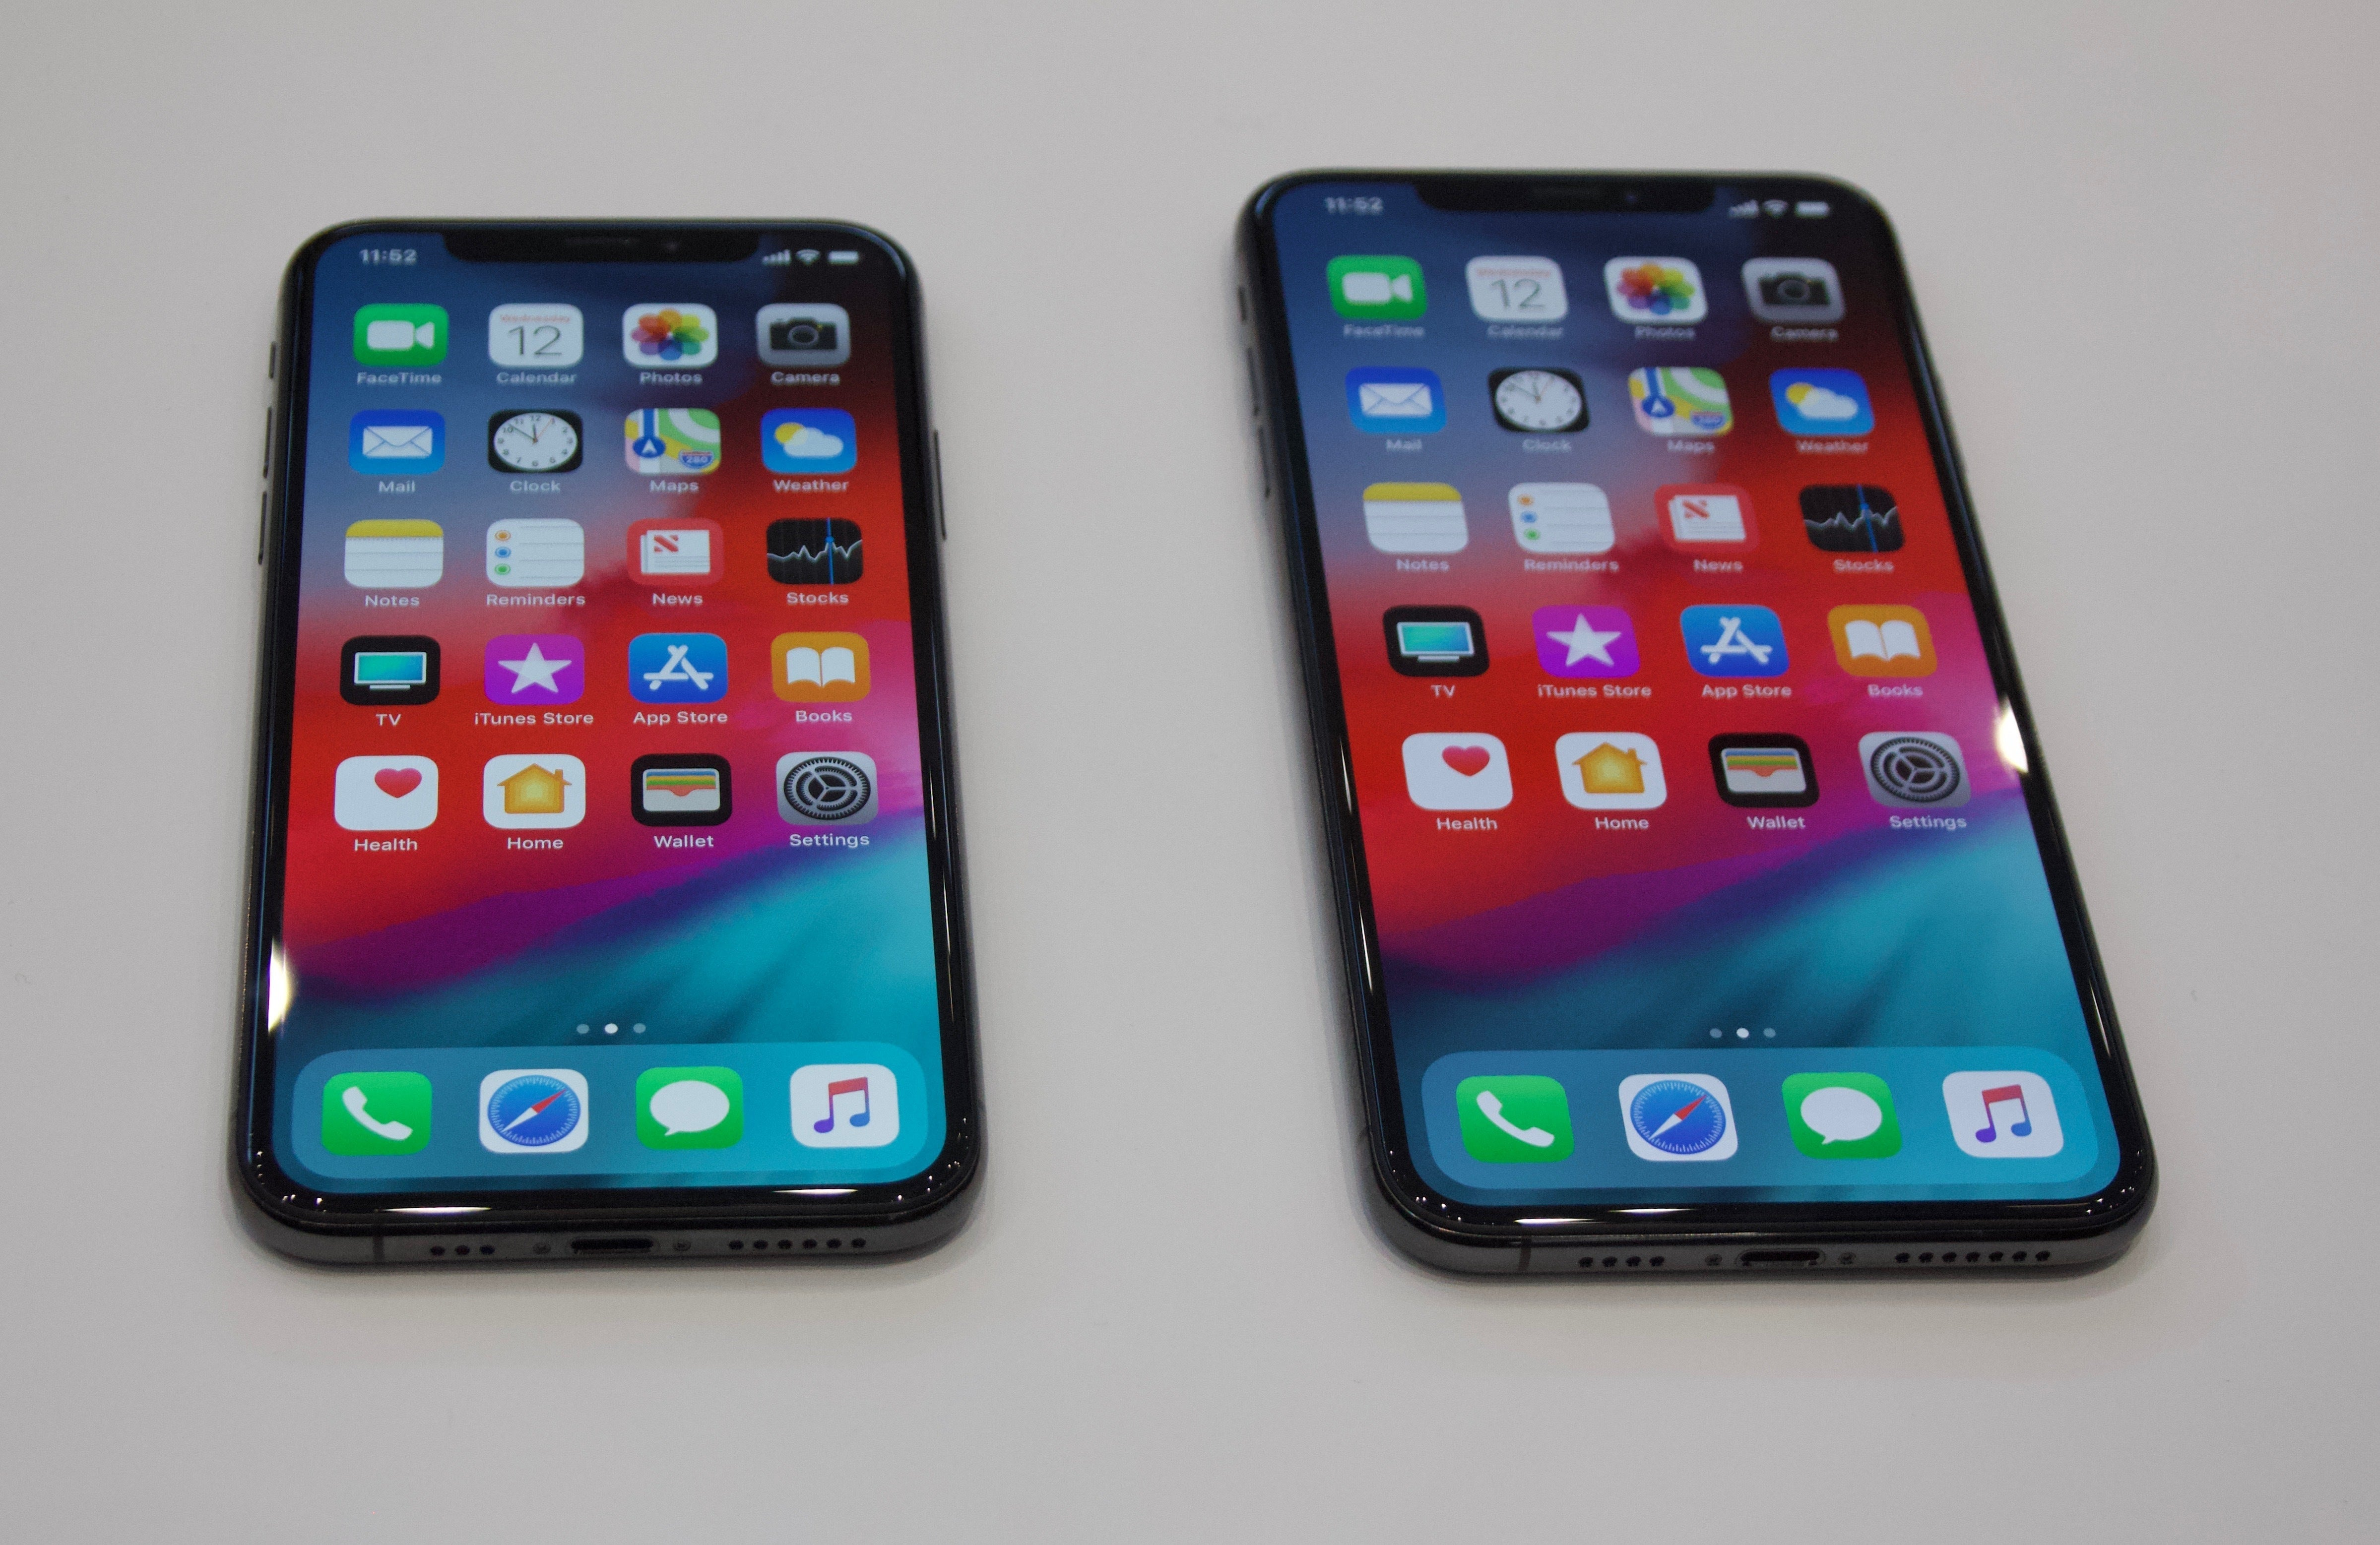 Hands-on With The New IPhone XS, IPhone XS Max, IPhone XR